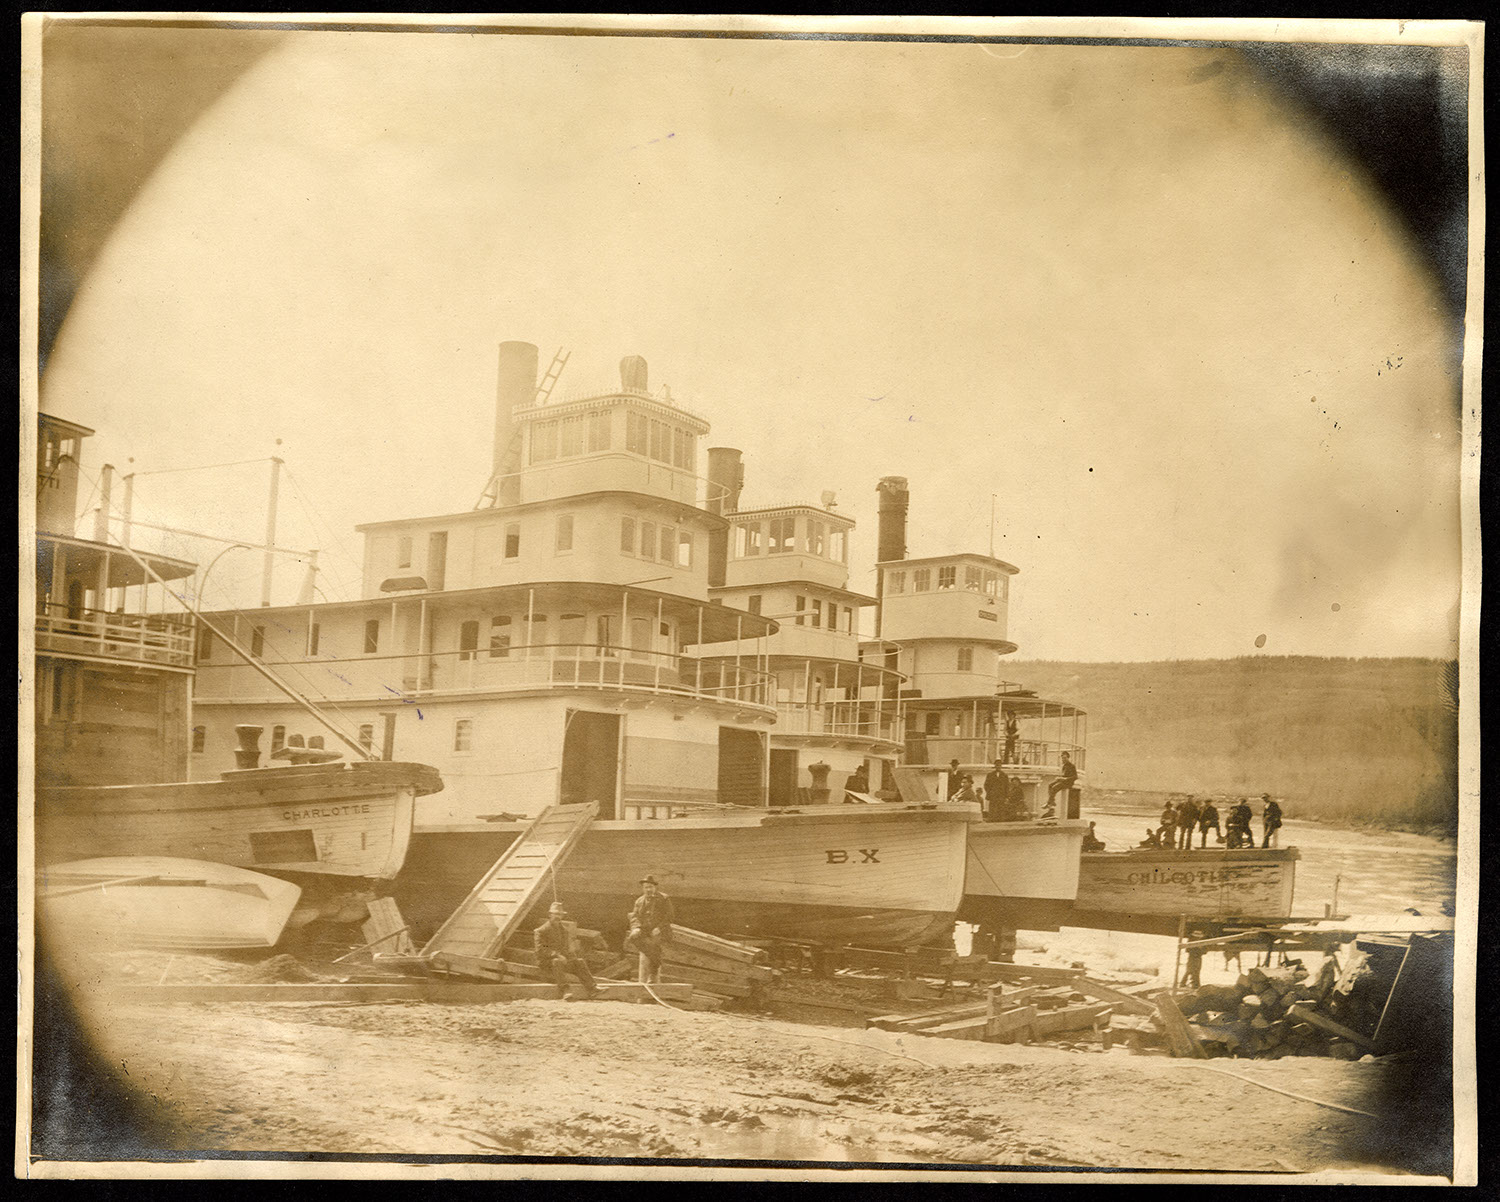 Sternwheelers docked on shore